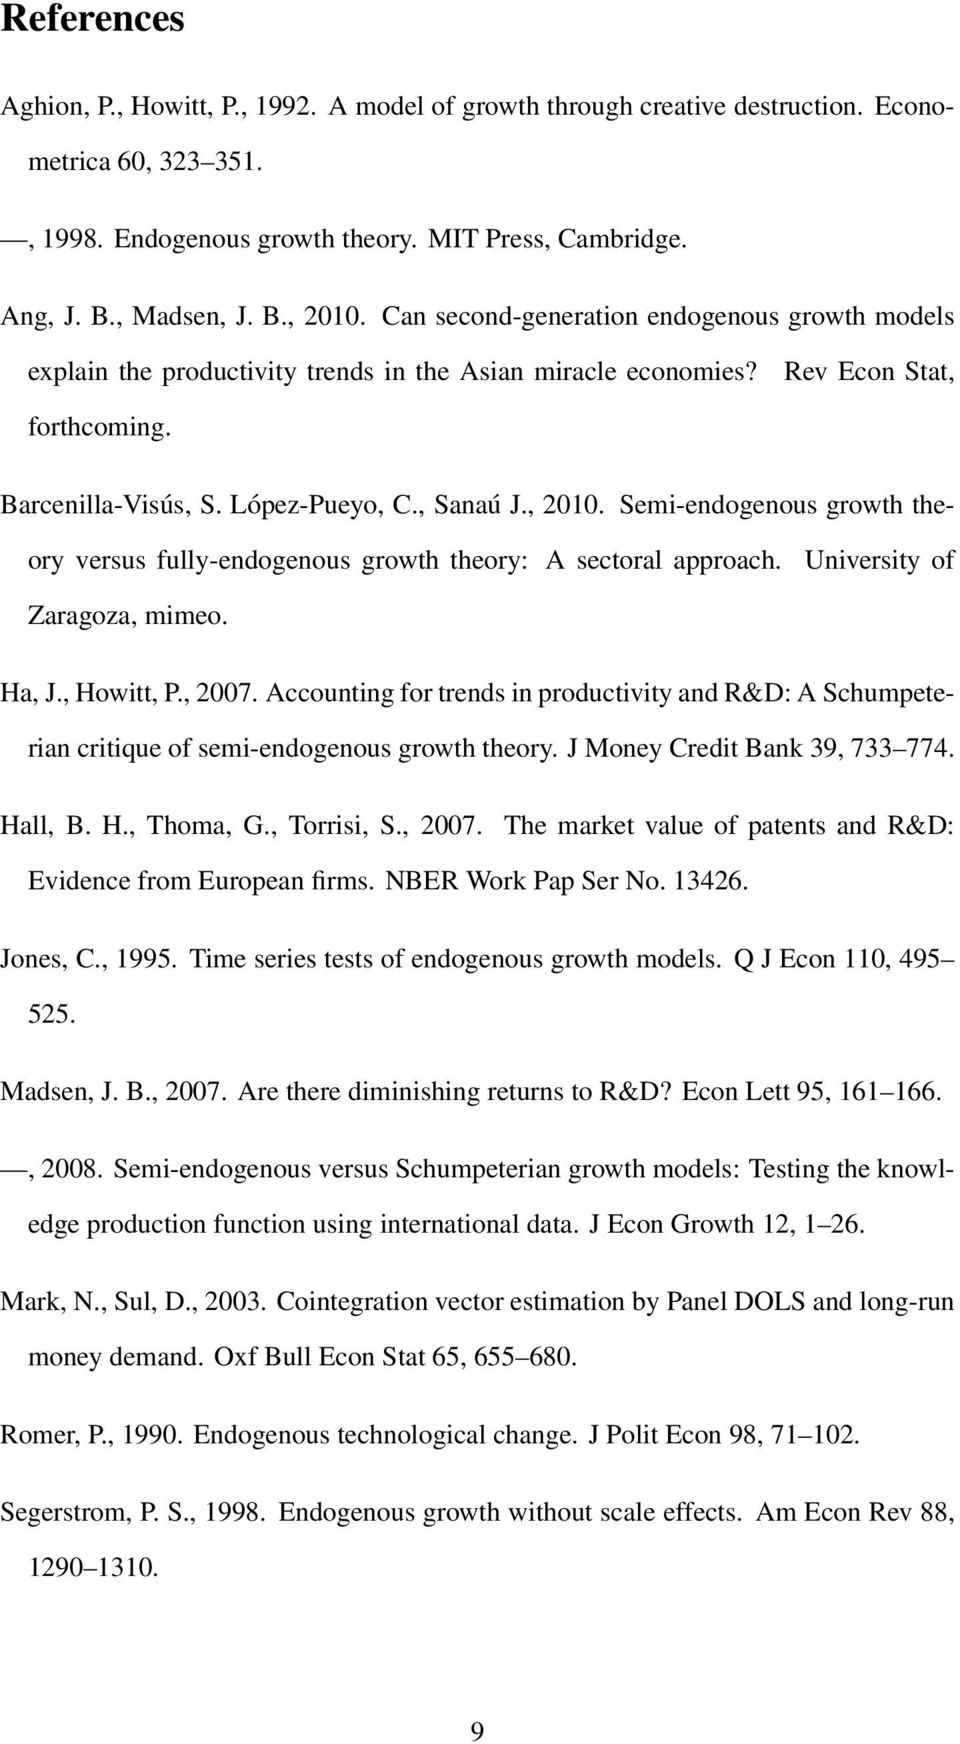 Semi-endogenous growth theory versus fully-endogenous growth theory: A sectoral approach. University of Zaragoza, mimeo. Ha, J., Howitt, P., 2007.